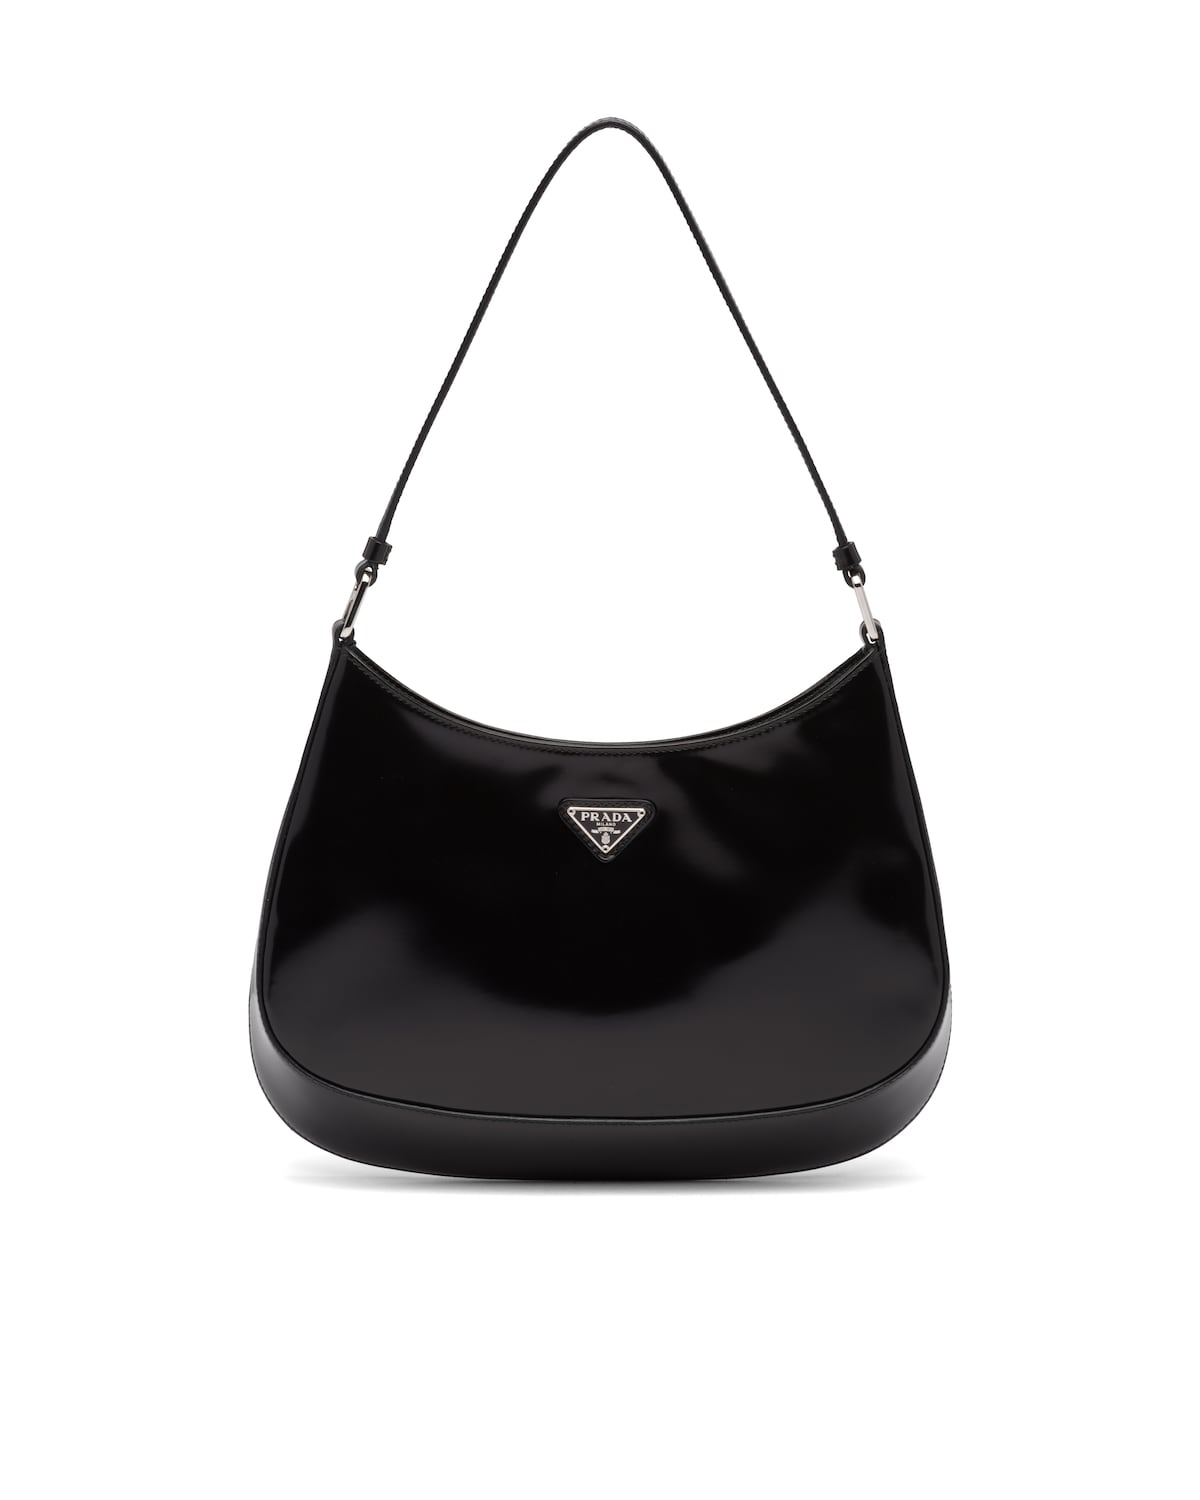 Cleo brushed leather shoulder bag by Prada, available on prada.com for EUR1600 Kendall Jenner Bags Exact Product